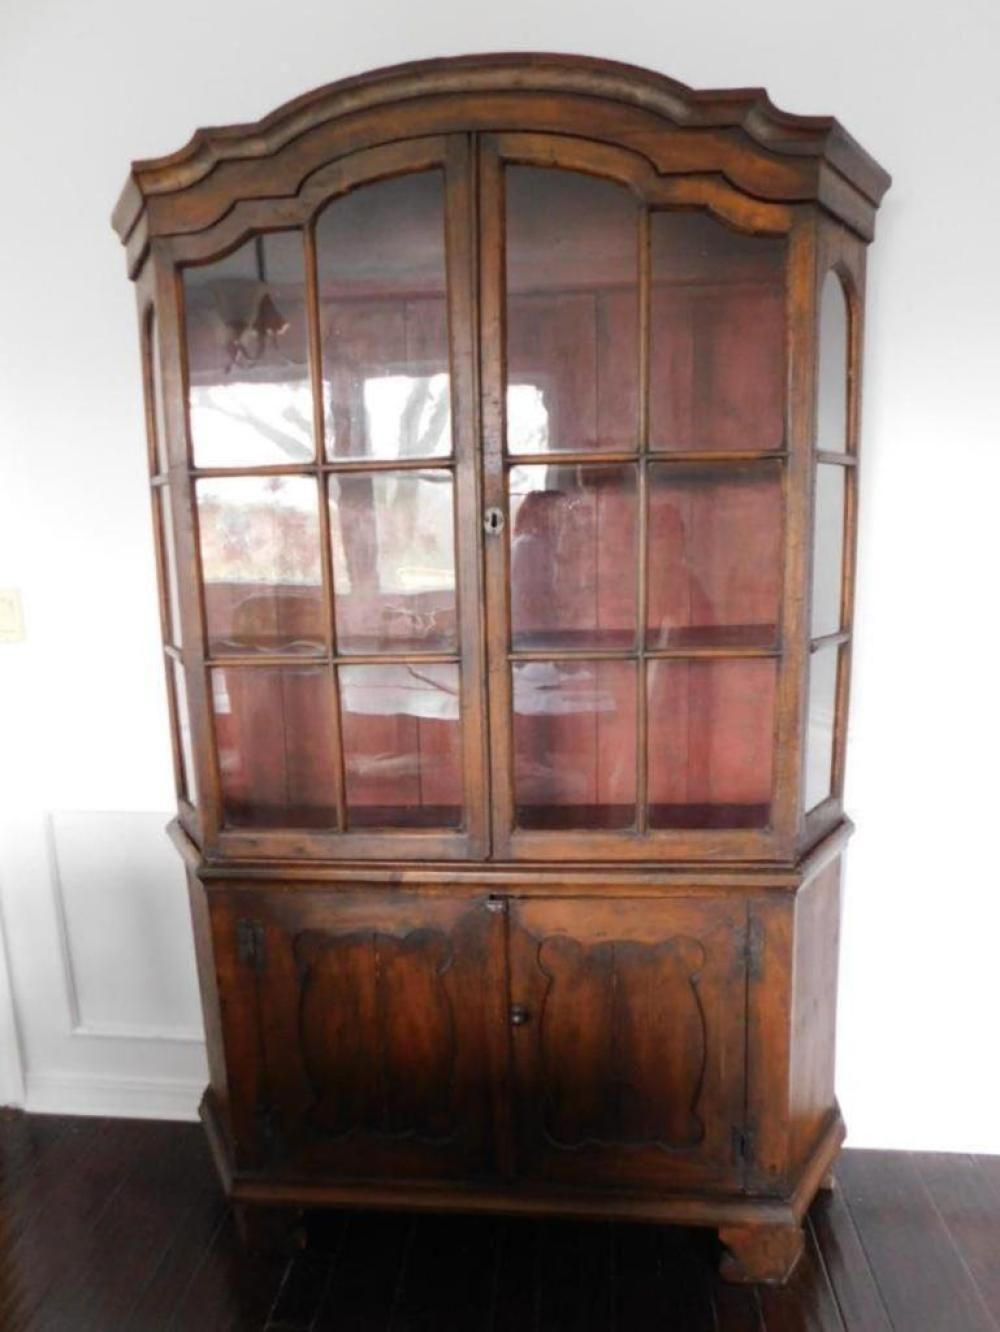 PREVIEW of Upcoming Lot: HANDMADE NEW ENGLAND FURNITURE